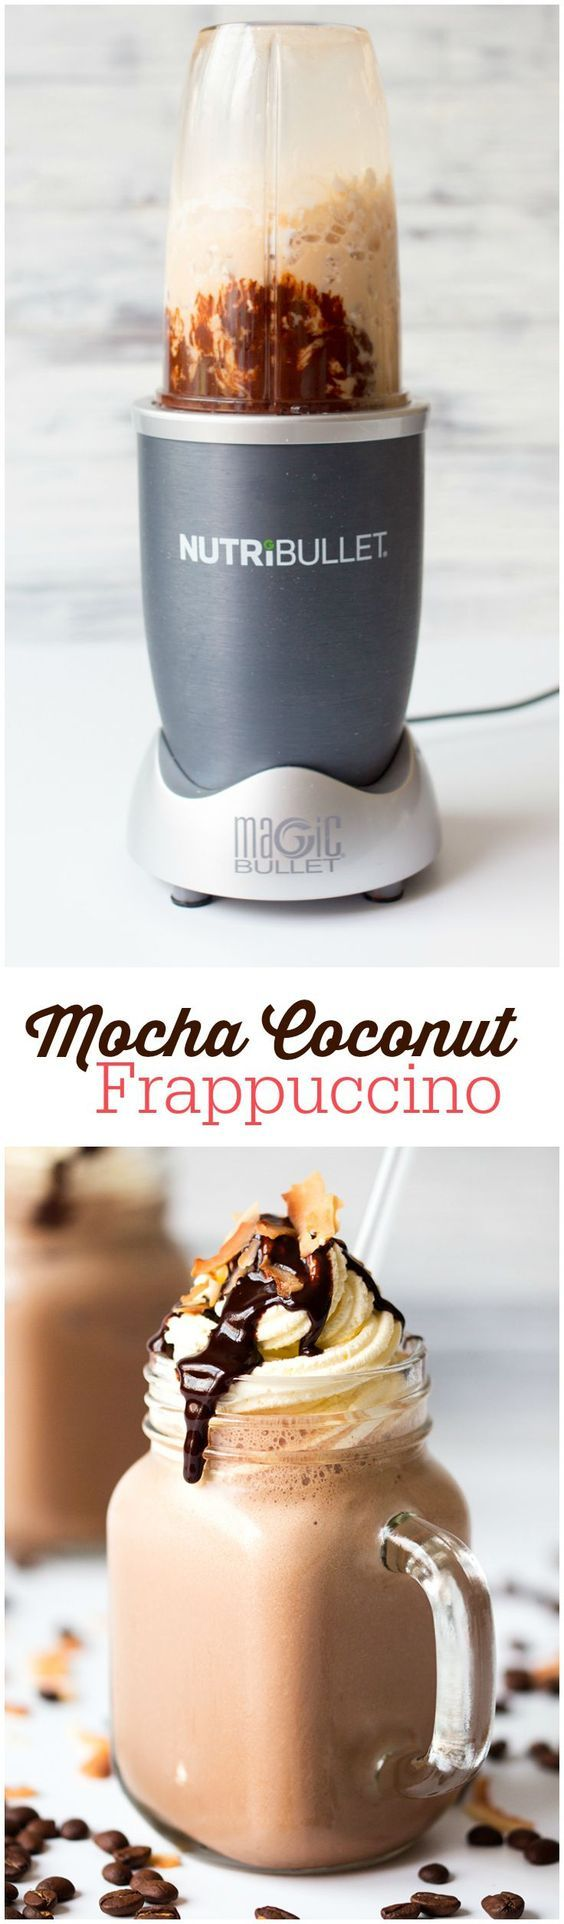 Mocha Coconut Frappuccino - tastes like the one at Starbucks. Warning - they are addicting!: